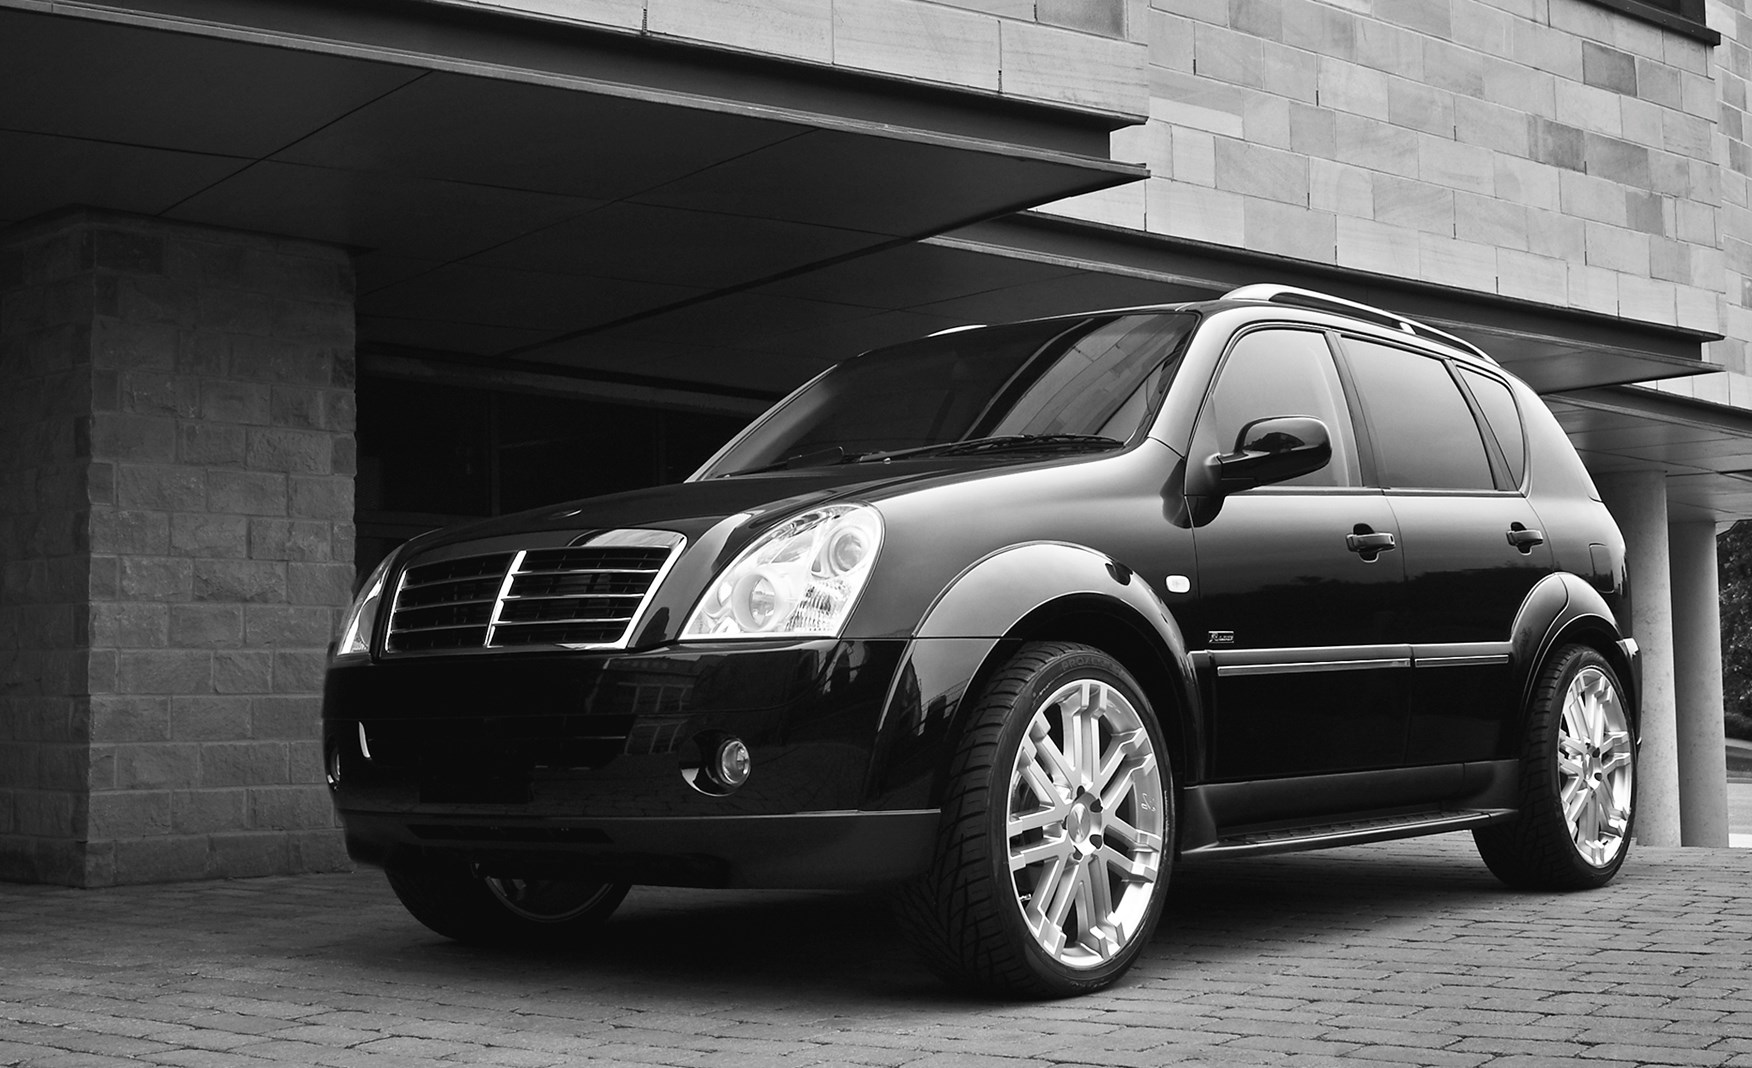 Performance Cars For Sale >> SsangYong Rexton Estate (2003 - 2013) Driving & Performance | Parkers